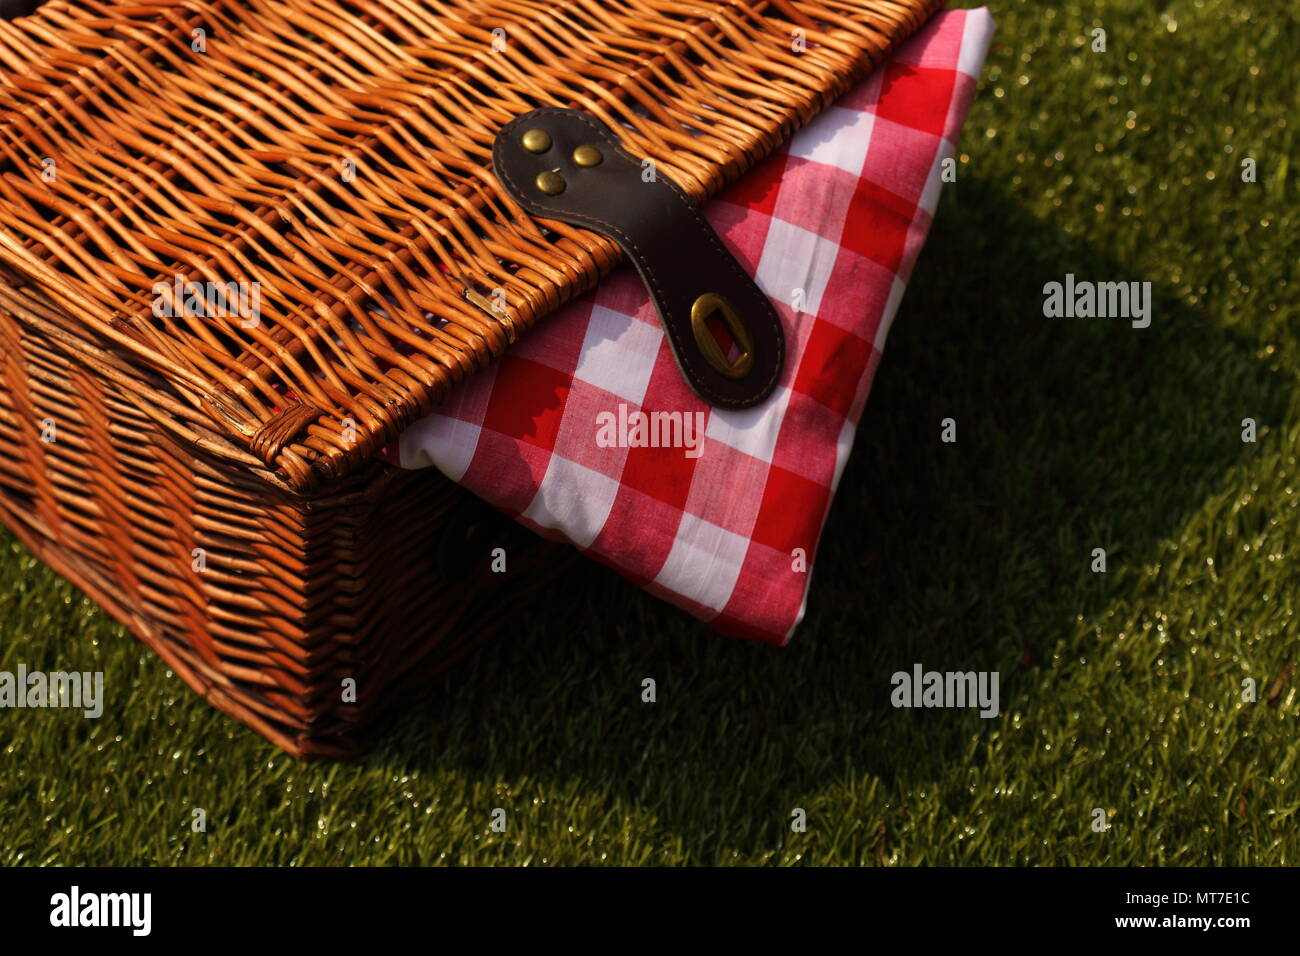 Wicker picnic basket with a red and white gingham cloth on a grass background - Stock Image